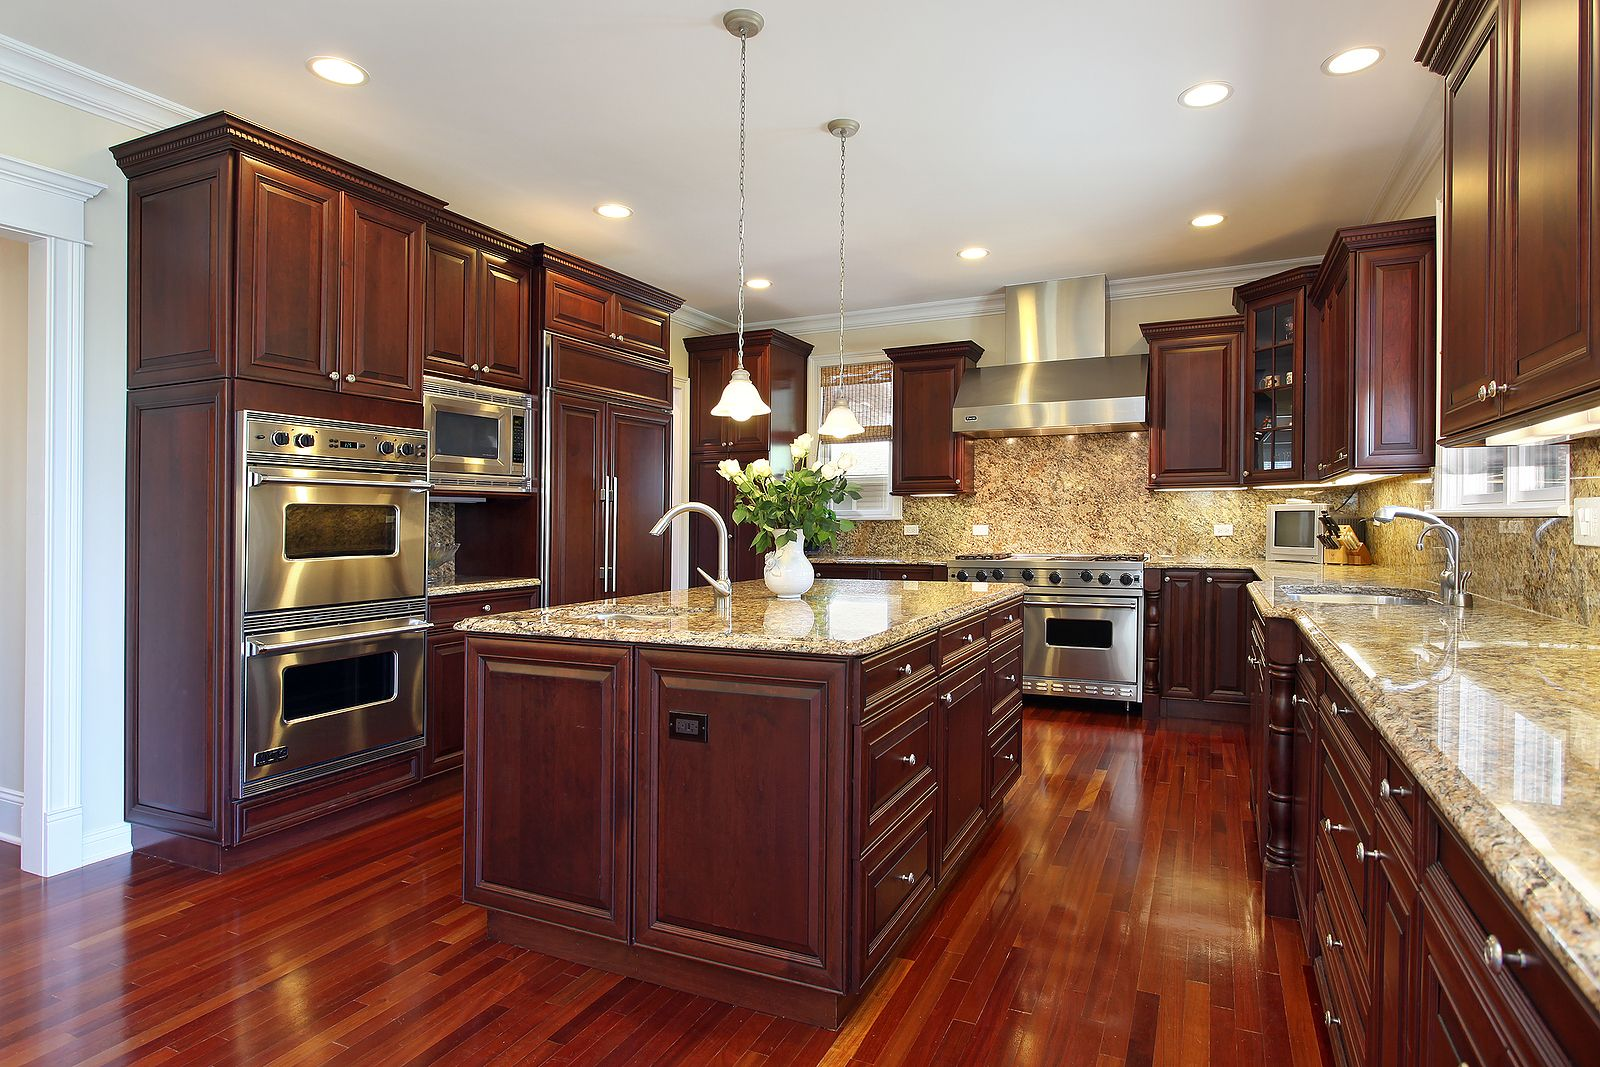 Cherry wood cabinets a must granite counter tops and an island loving the